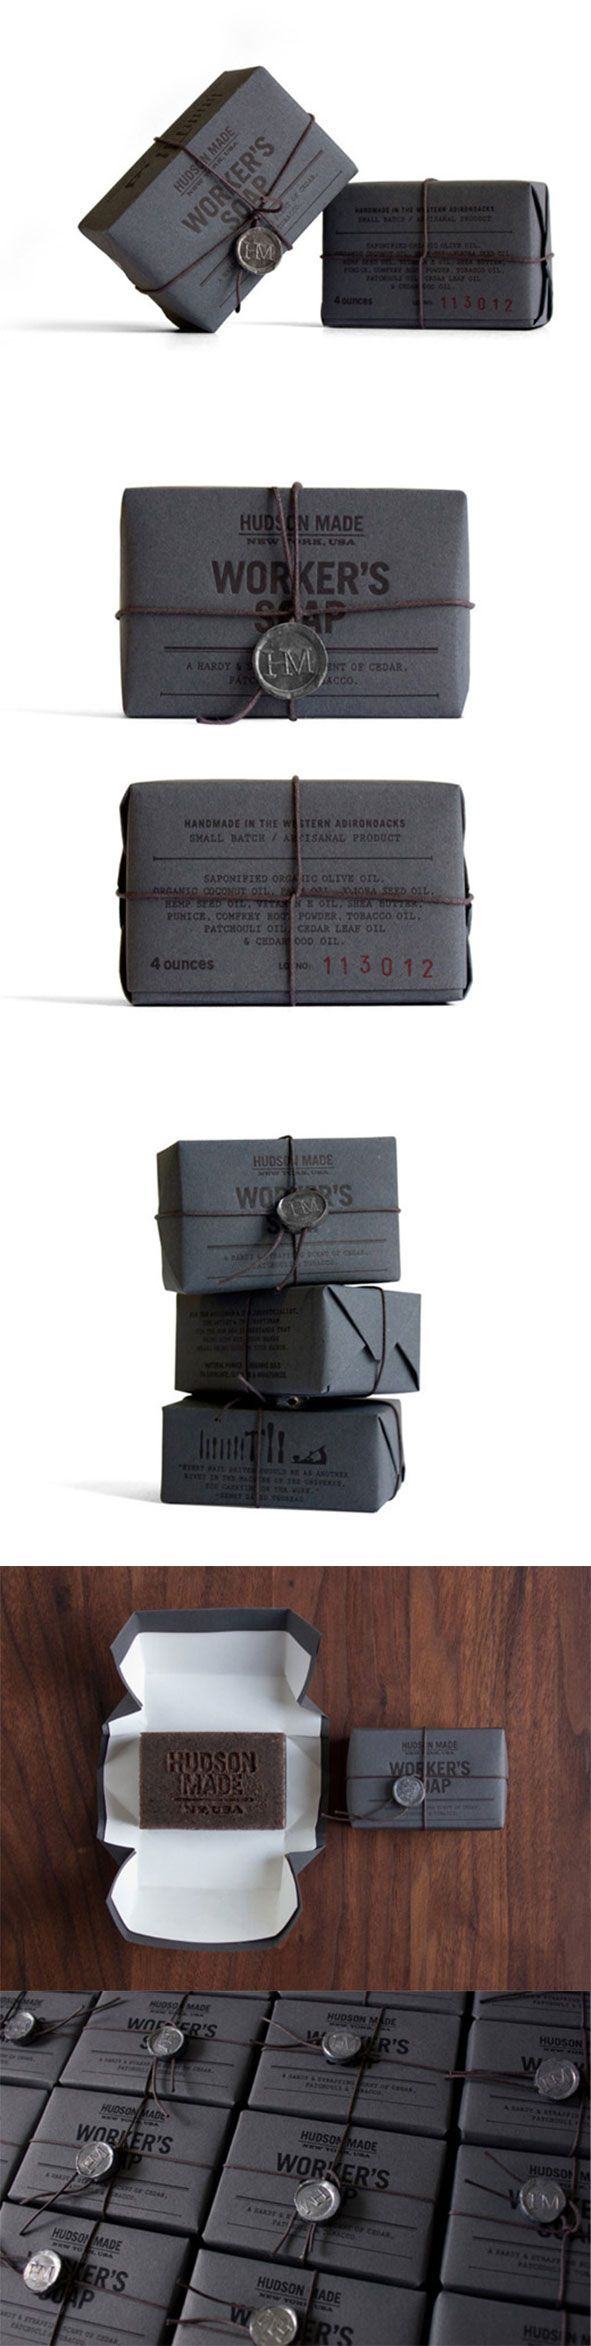 Hudson Made: Worker's Soap $16 #inspiration Torso Vertical Inspirations Blogging inspirational work, a visual source for Torso Vertical. Connect with Torso Vertical Branding, advertising & Illustration www.facebook.com/TorsoVerticalDesign @torsovertical www.torsovertical.com